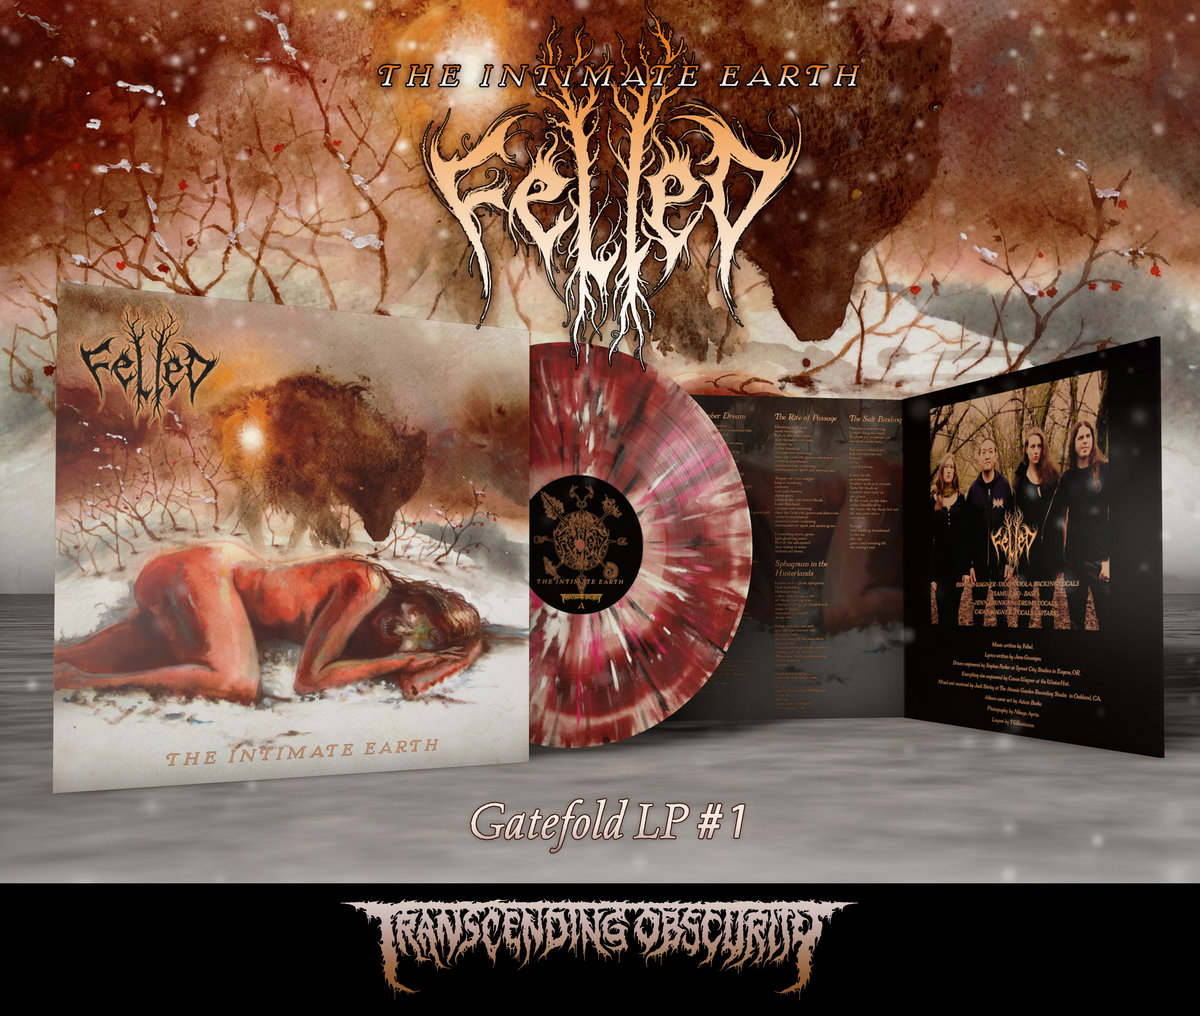 FELLED - The Intimate Earth Gatefold LP with Sandalwood Fragrance (Limited to 100 per variant)